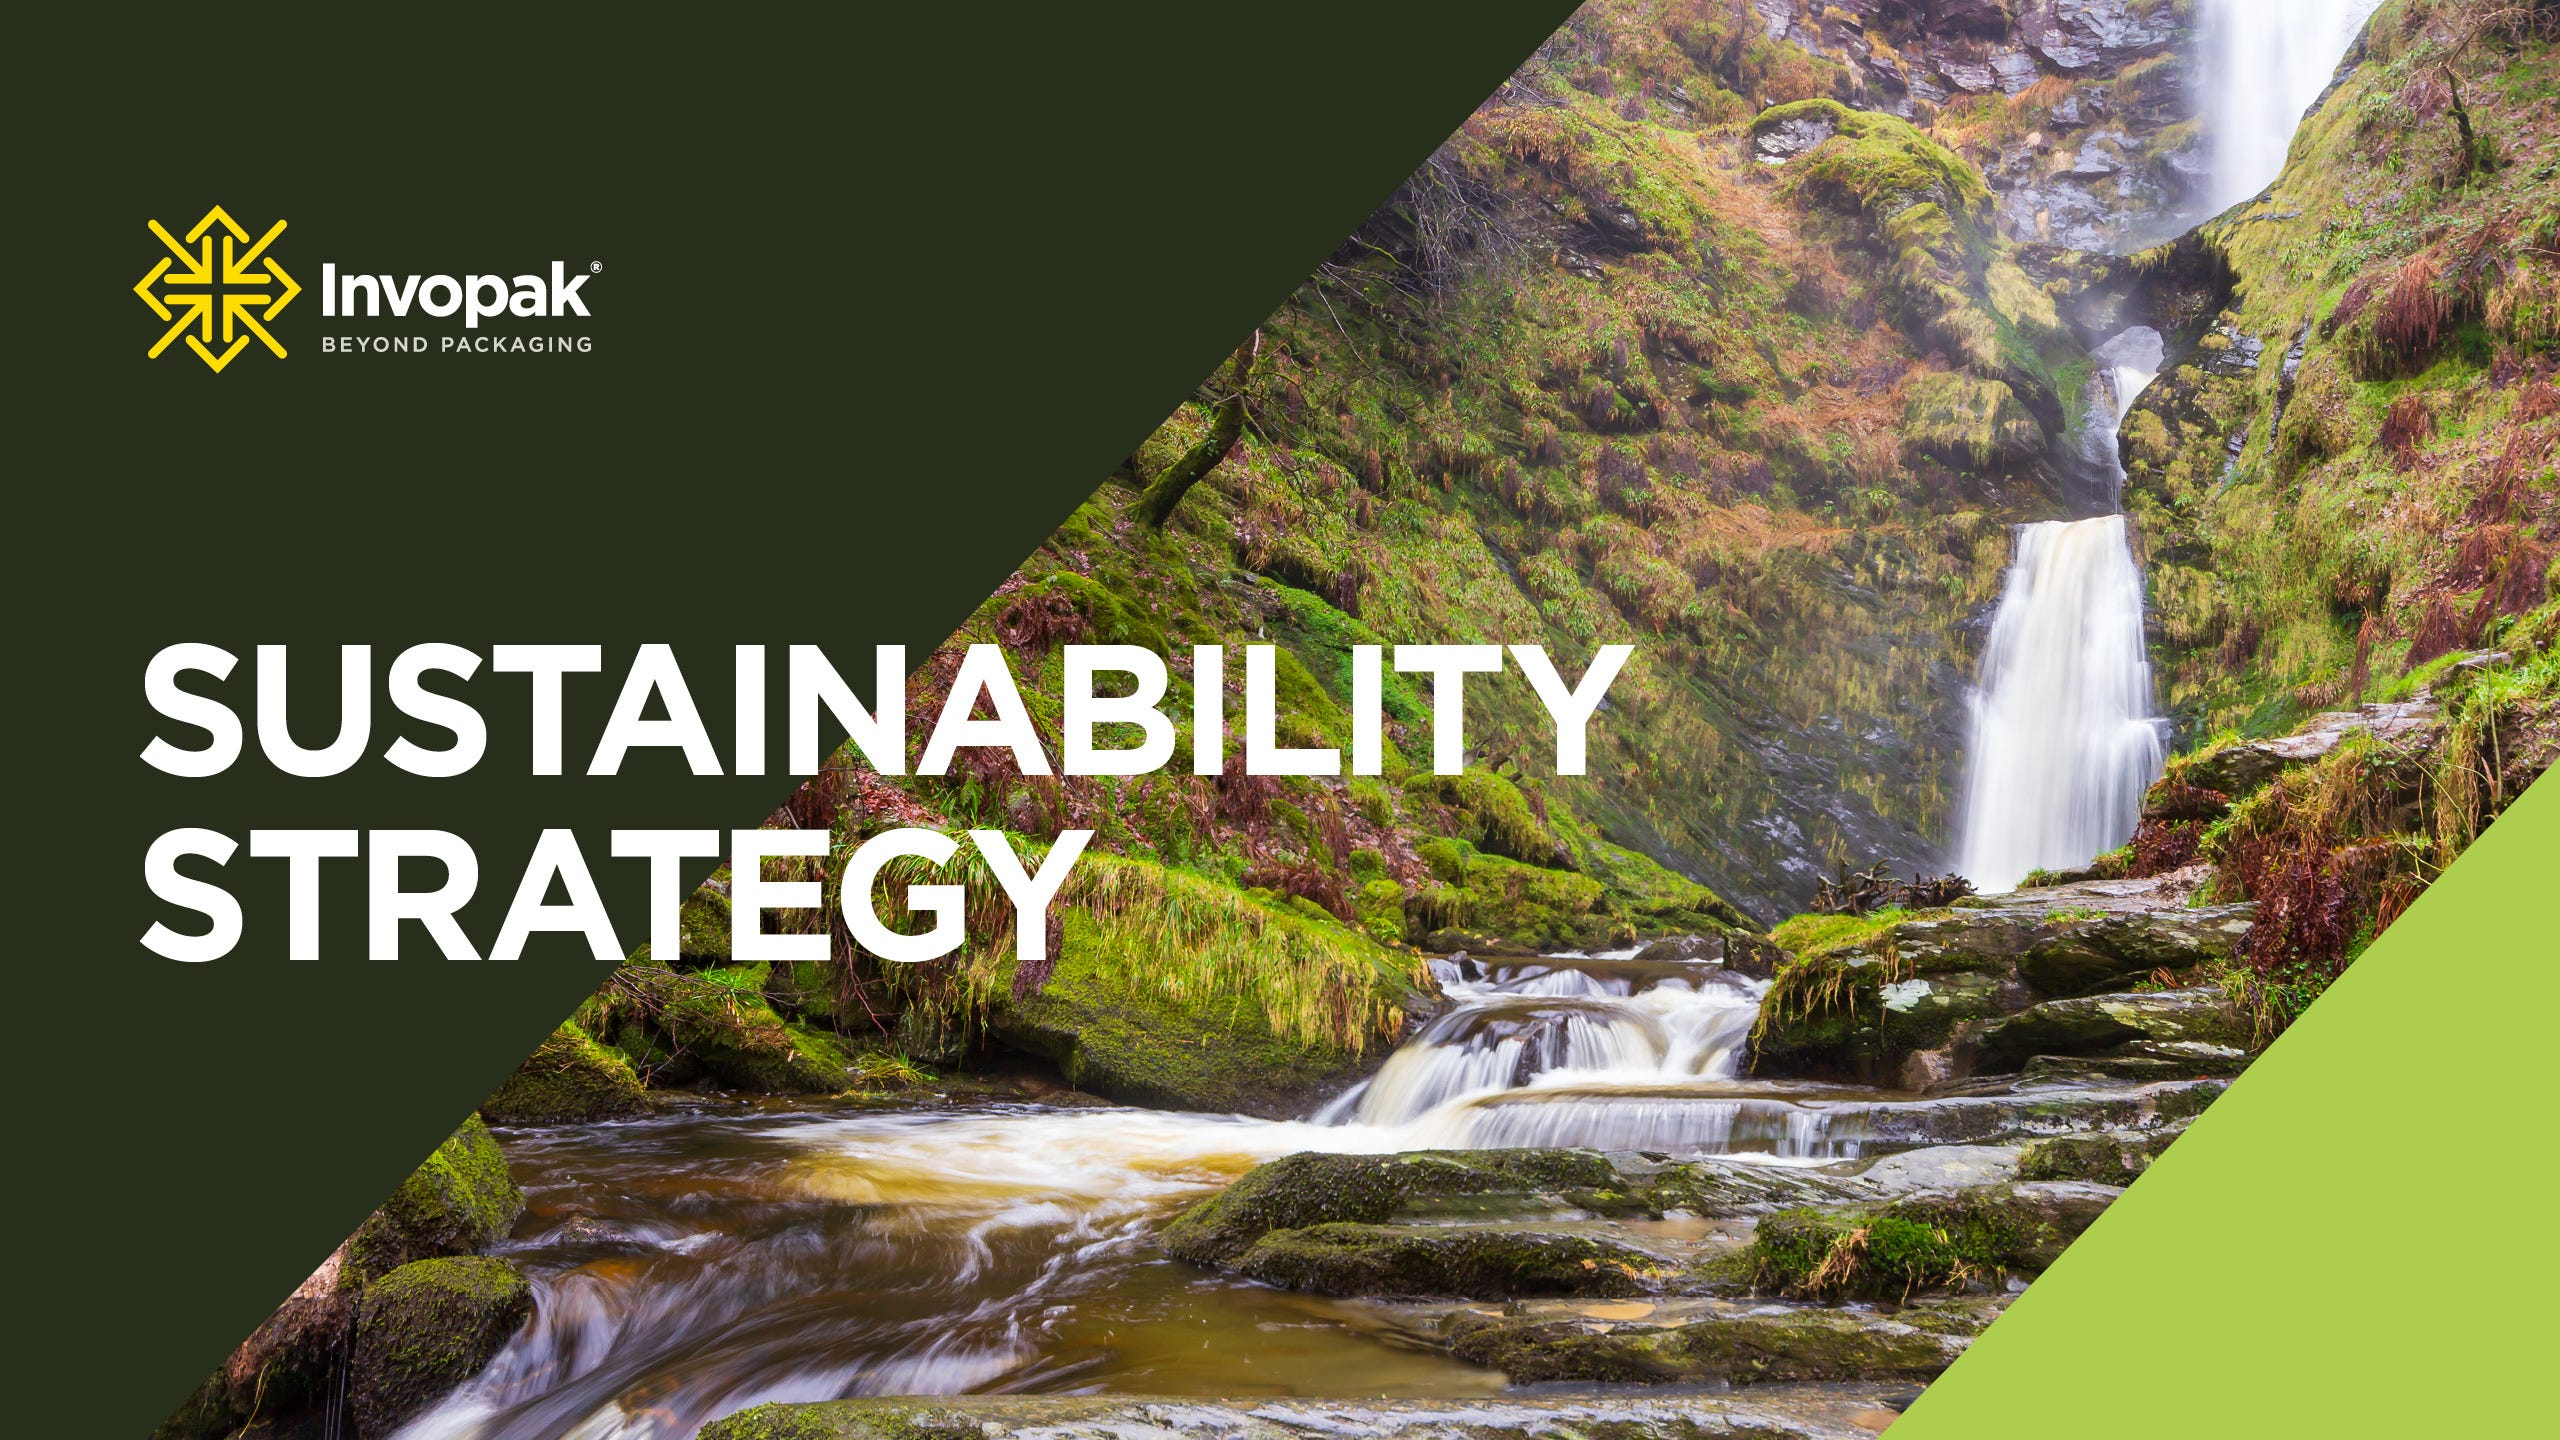 Building a sustainable business for the future